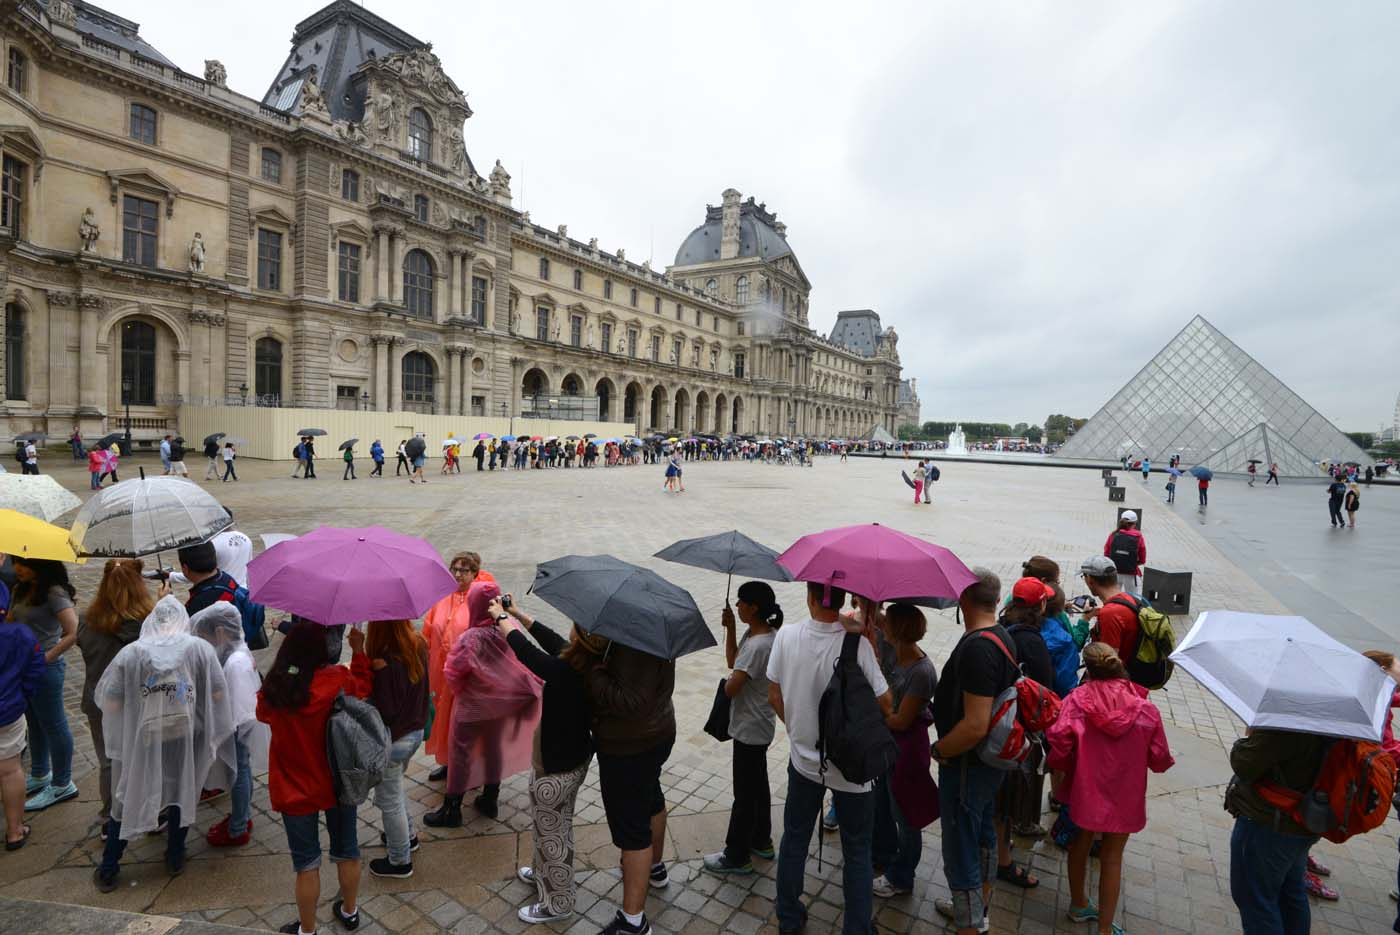 (FILES) This file photo taken on August 08, 2014 shows people queueing under the rain to get in the Louvre Museum in Paris. After a decline in 2016 due to the terror attacks in Paris and Nice, tourism in Paris and Ile de France is in much better shape in the first half of 2017, with 1,5 million tourists and 3,3 million overnight stays more than a year ago. / AFP PHOTO / DOMINIQUE FAGET